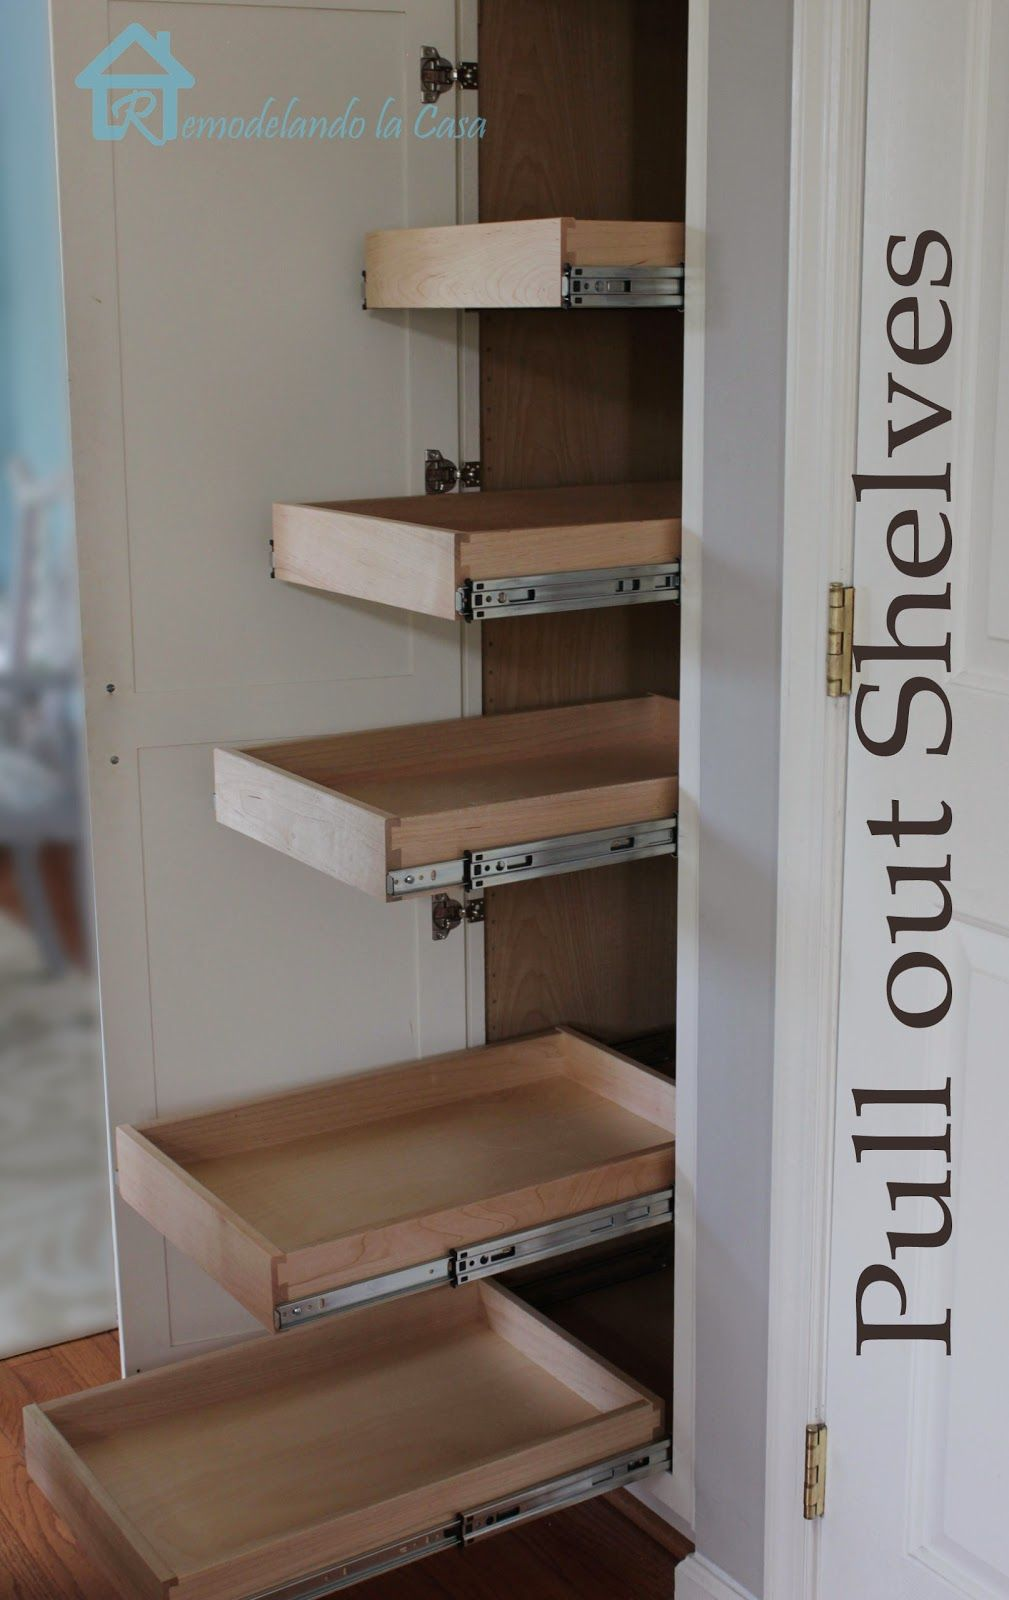 Kitchen Organization   Pull Out Shelves In Pantry. DIY Really Practical  Information.